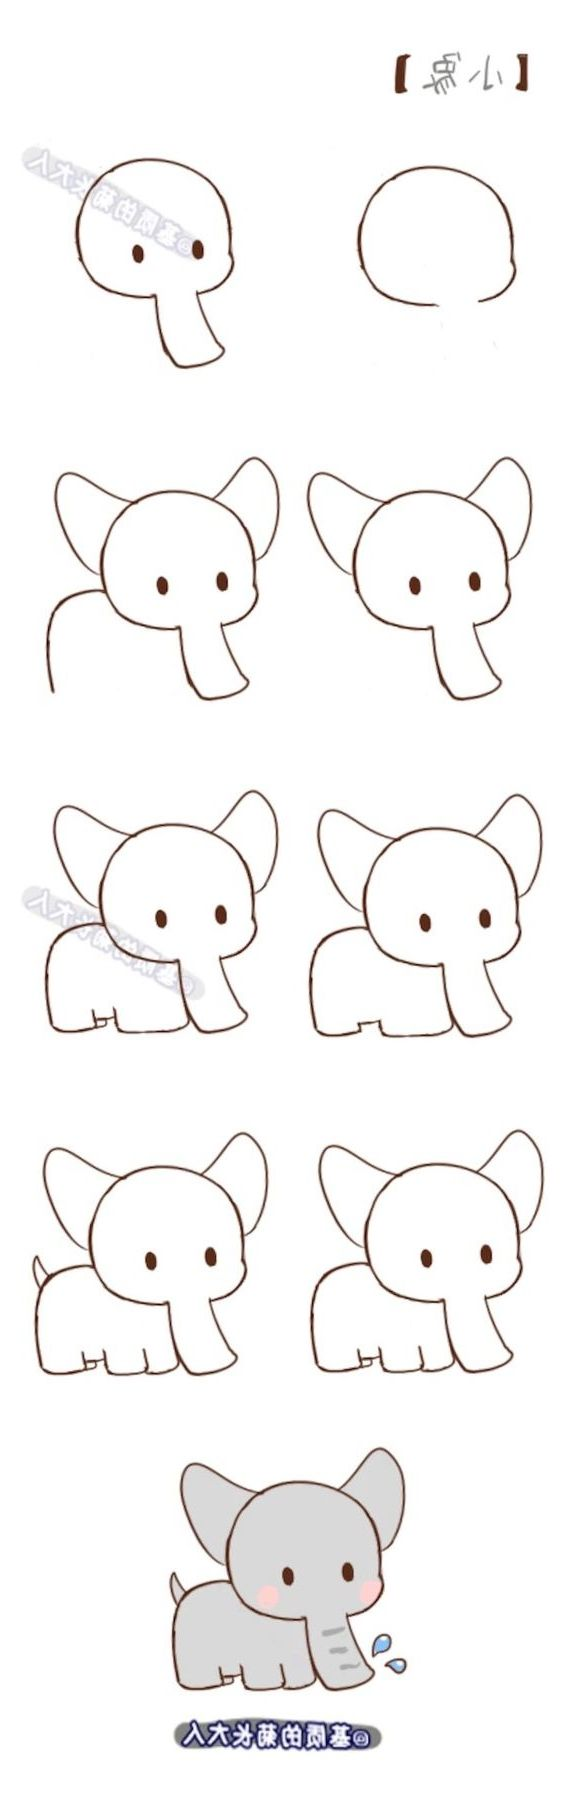 20 Easy Drawing Tutorials For Beginners Cool Things To Draw Step By Step Easy Drawing Tuto Cute Easy Drawings Cute Easy Animal Drawings Easy Animal Drawings